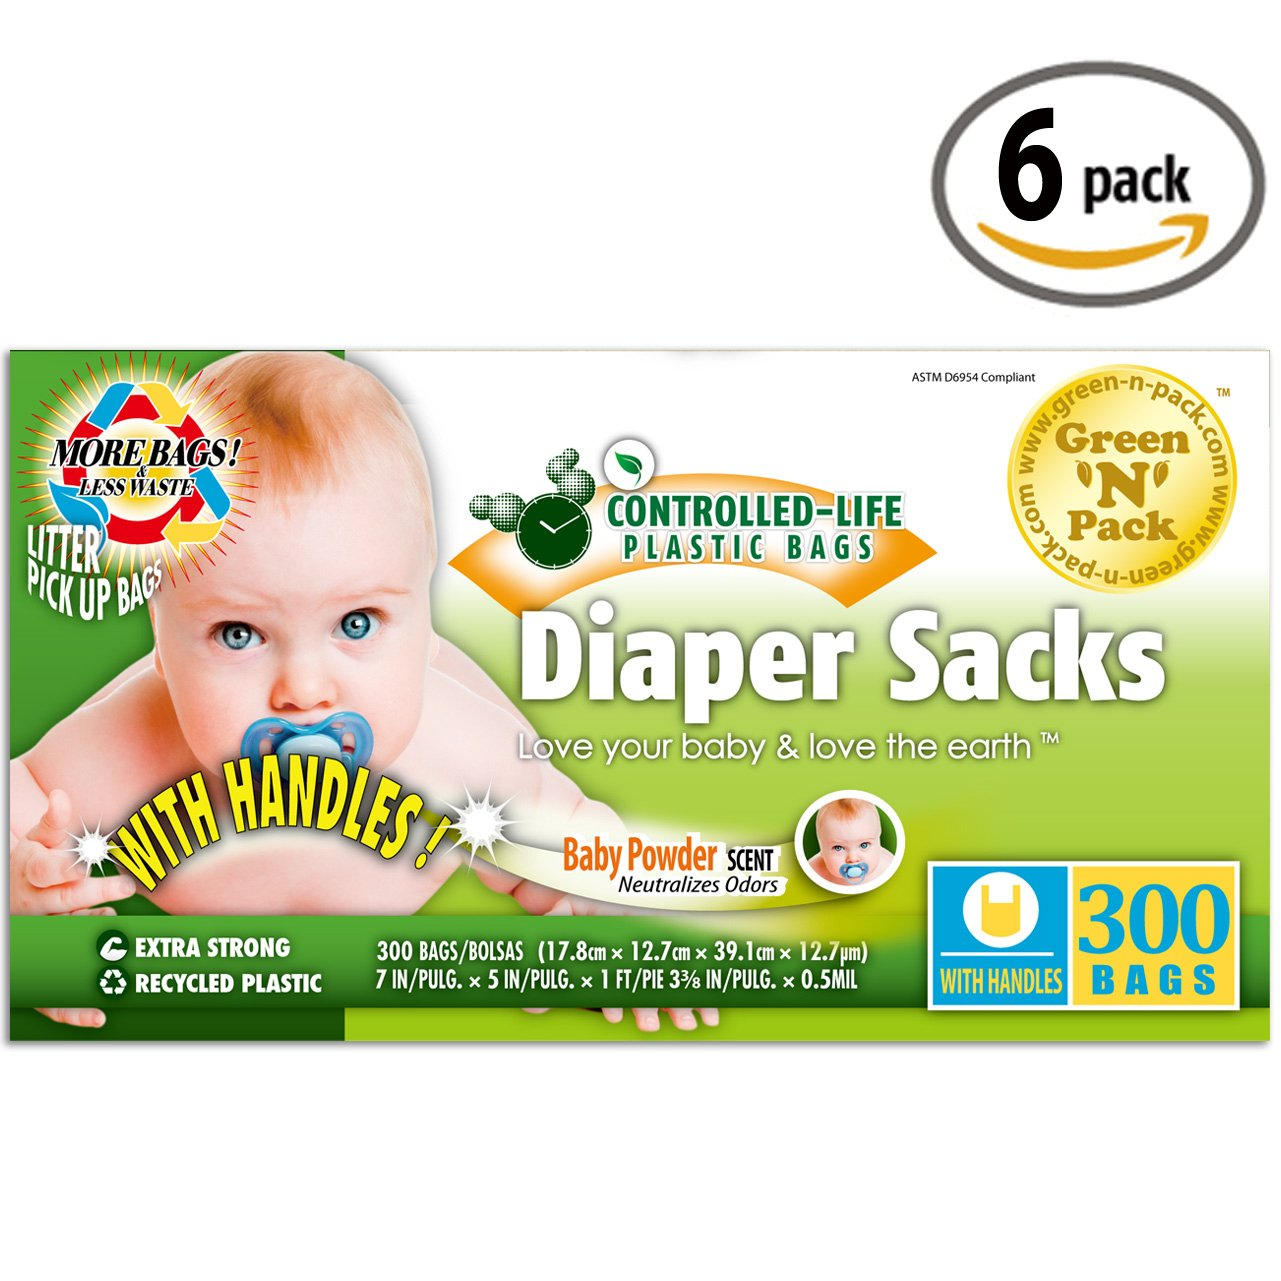 Green N Pack Baby Diaper Sacks with Fresh Baby Powder Scent (BPA Free), 300 Count, Pack of 6